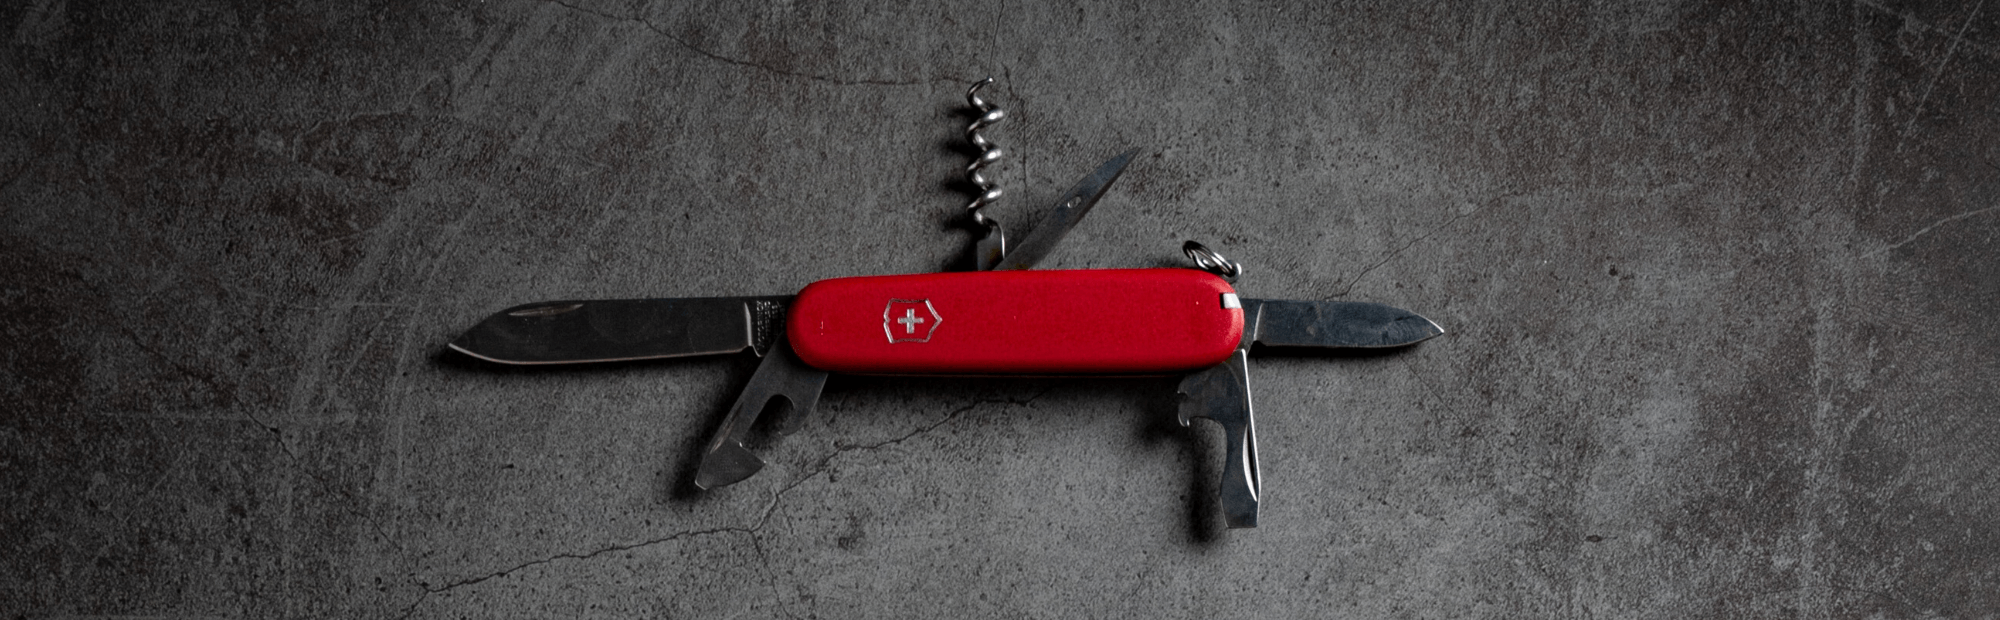 Image for 4 Problems for Managed Service Providers and the Swiss Army Knife that's solving them.